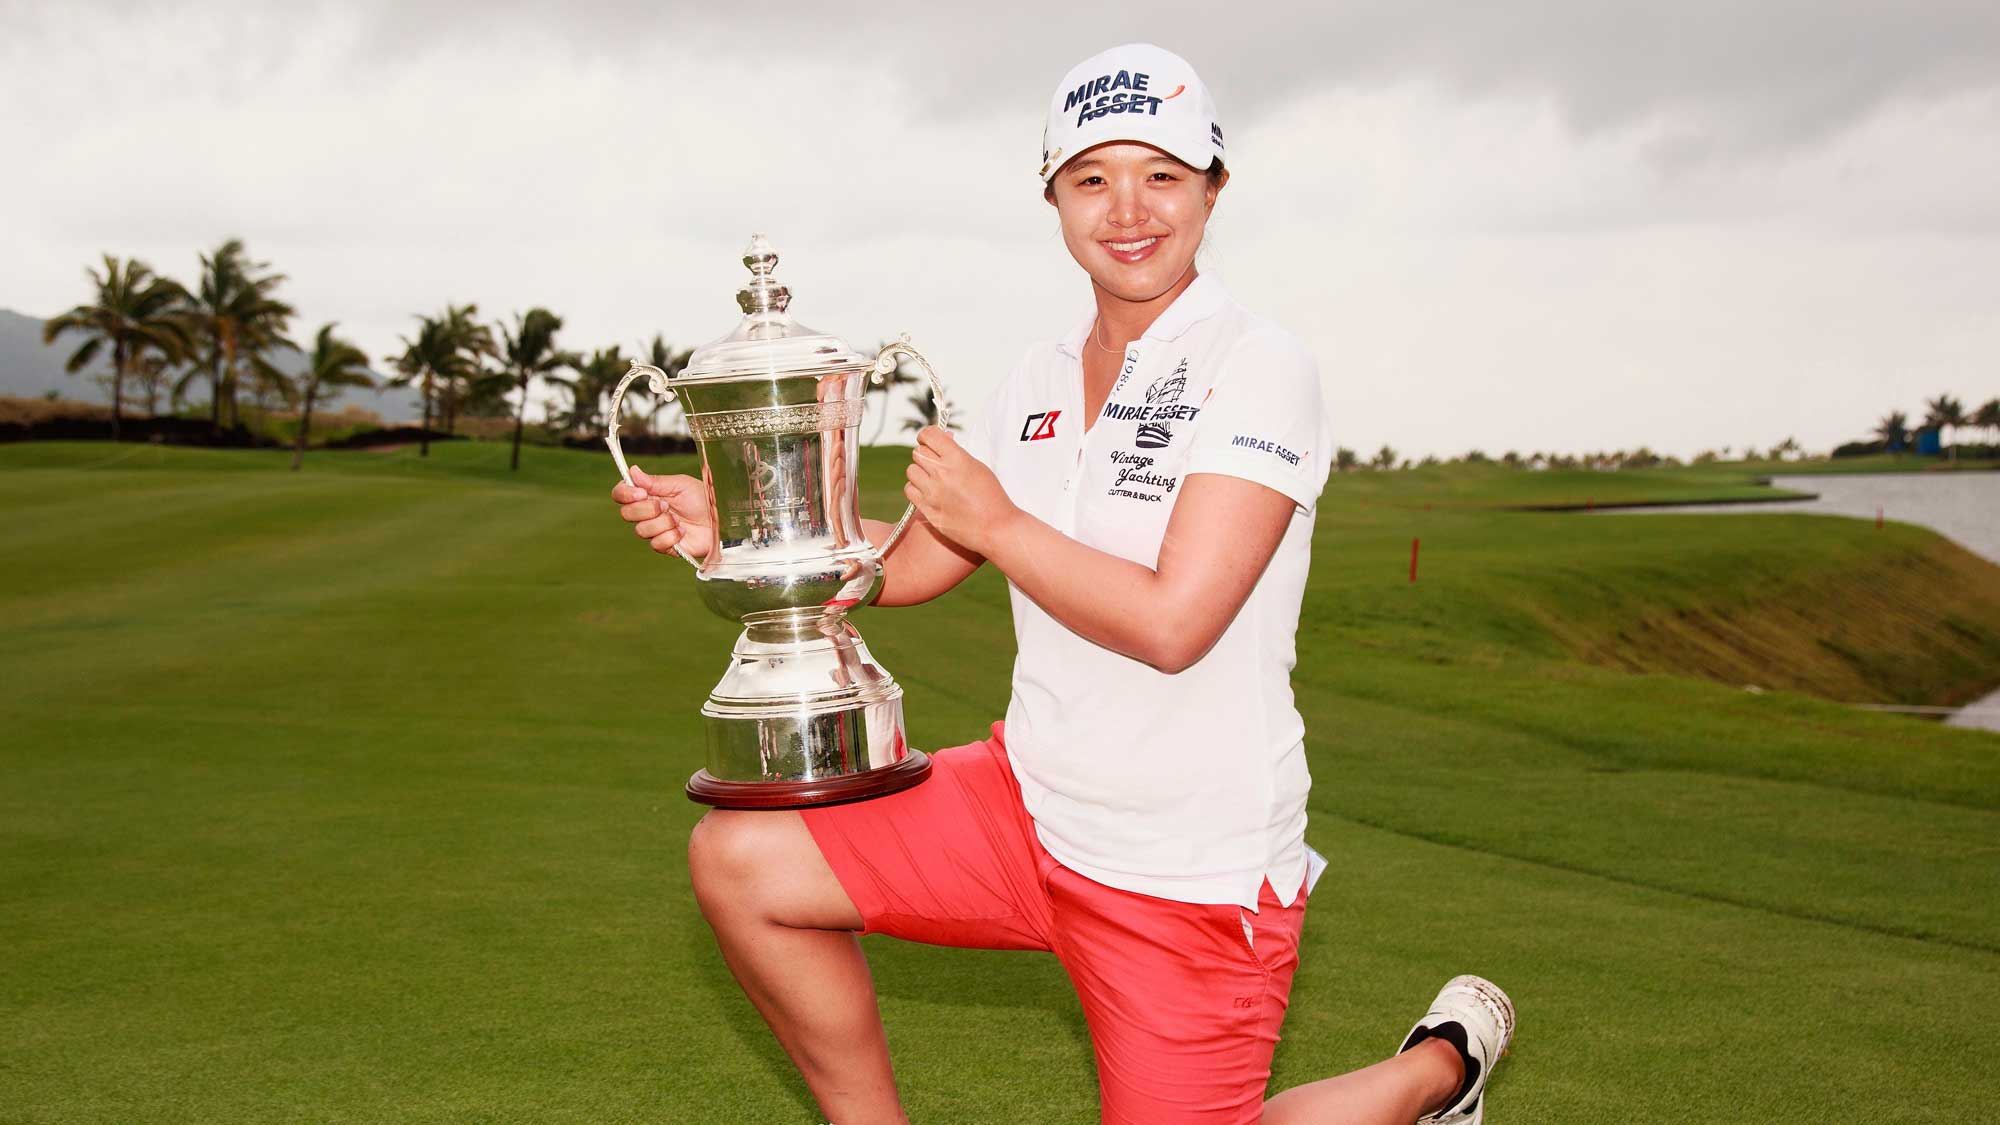 Blue Bay LPGA defending champion Sei Young Kim